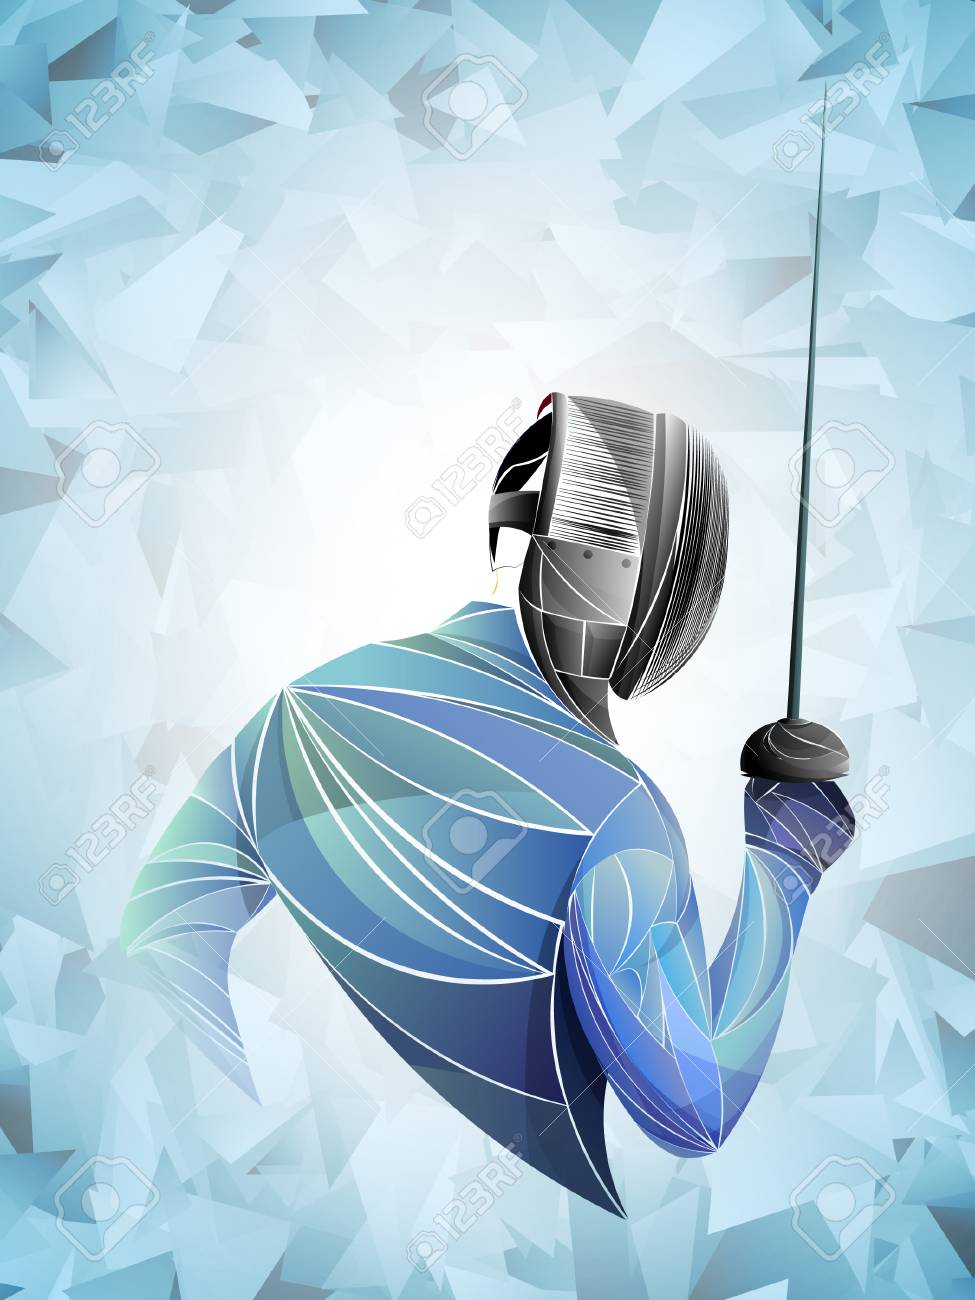 Fencer. Man wearing fencing suit practicing with sword. Sports arena and lense-flares. Neon effect. Vector illustration. - 110314796